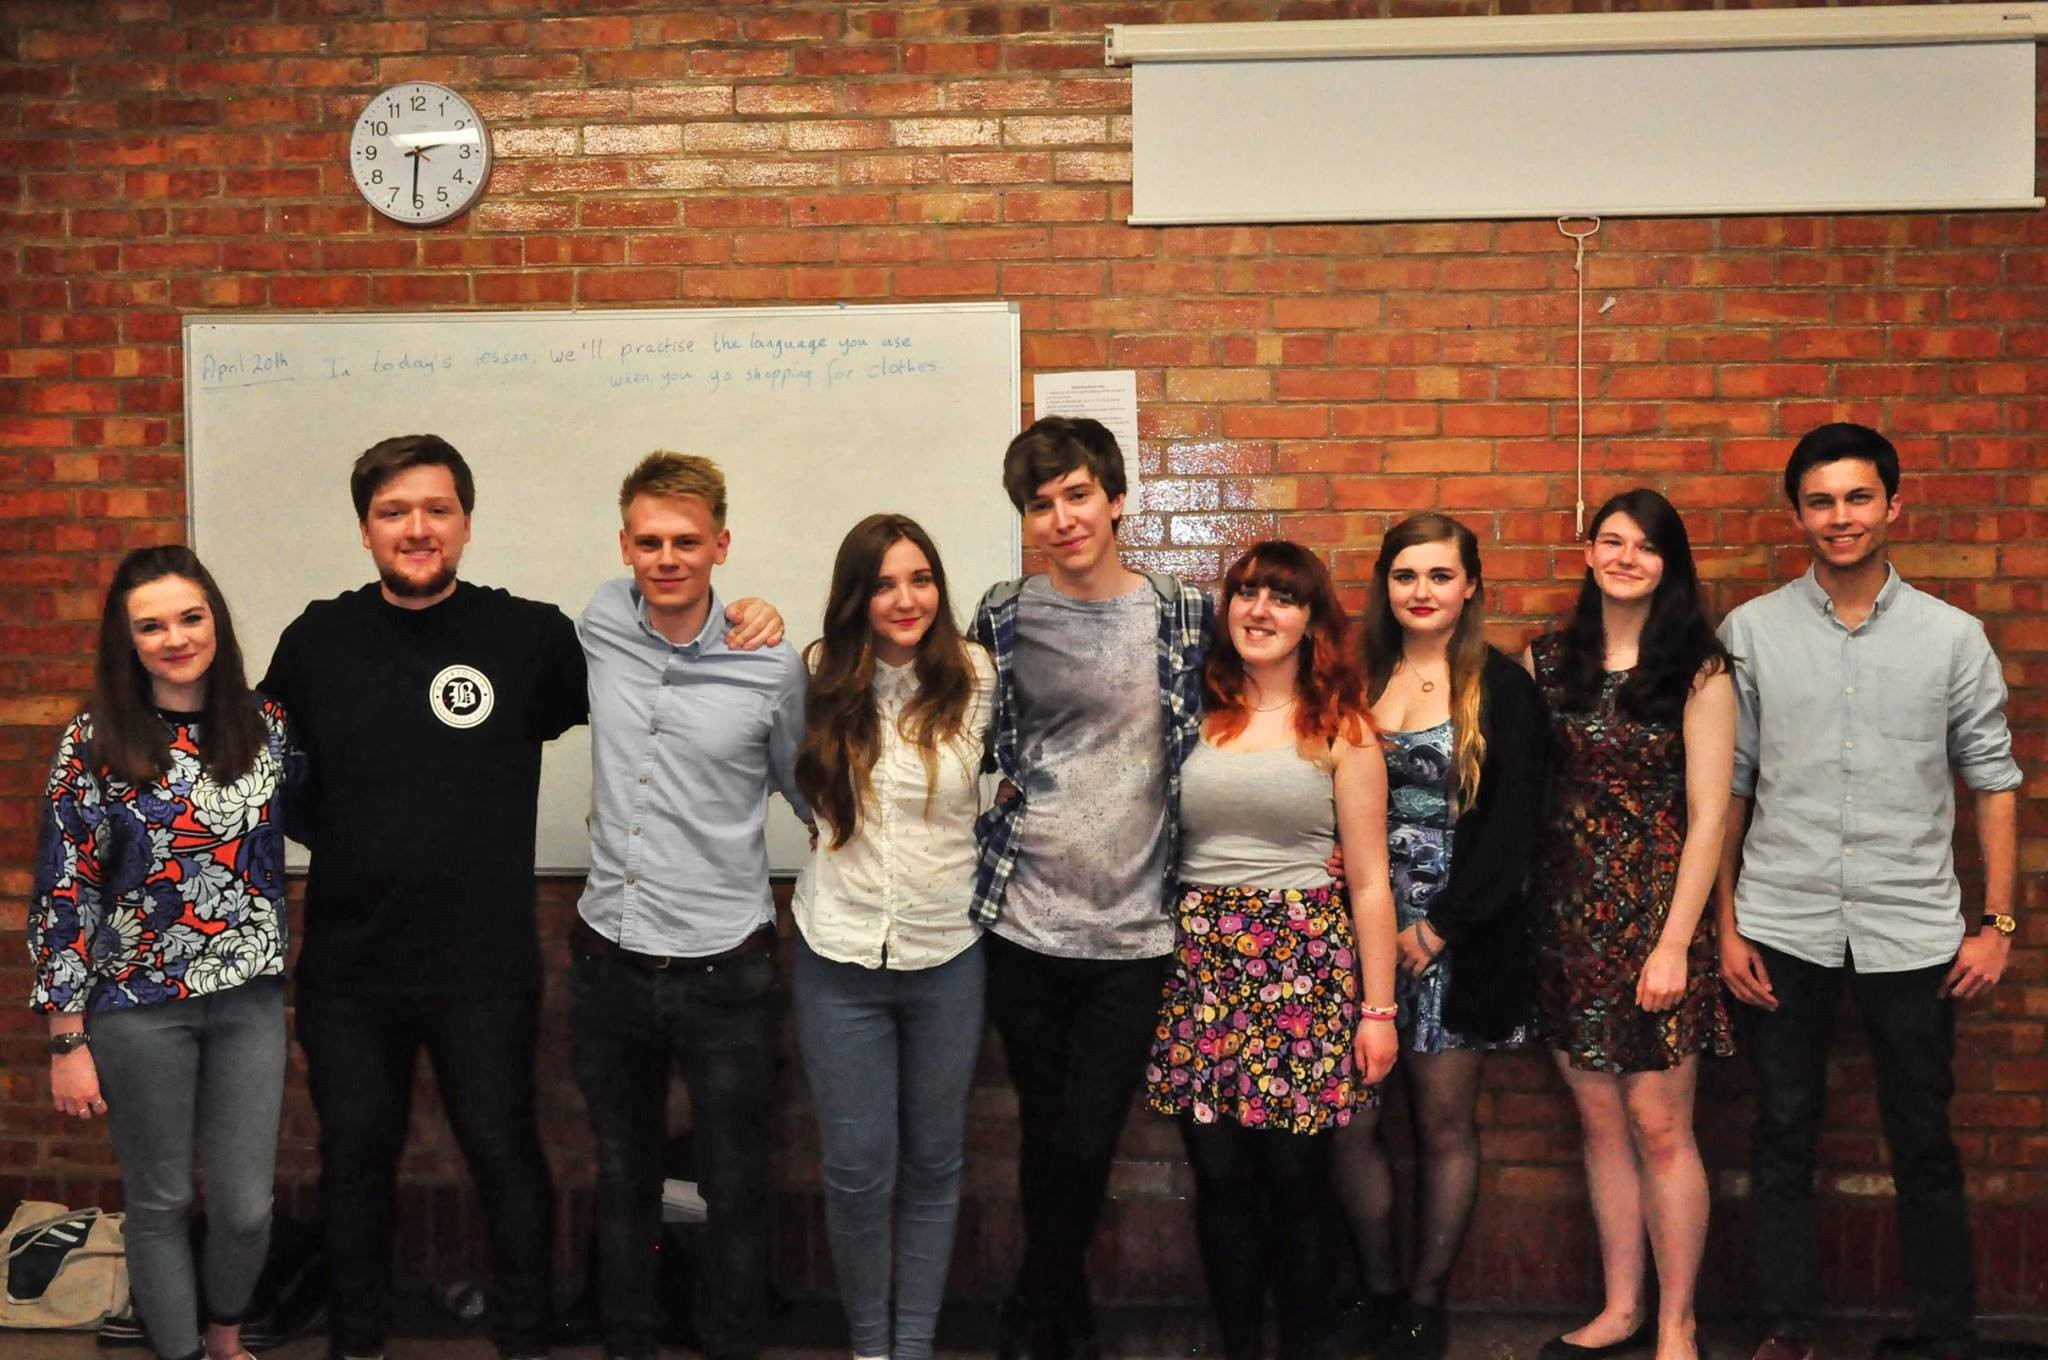 The recently elected pH7 committee – L-R: Ellen Smith, Josh Bolam, Harry Colman, Ashley Carley, Joey Relton, Charlotte Perry, Lauren Nuttall, Ella Hubber and Dan Ravenscroft.